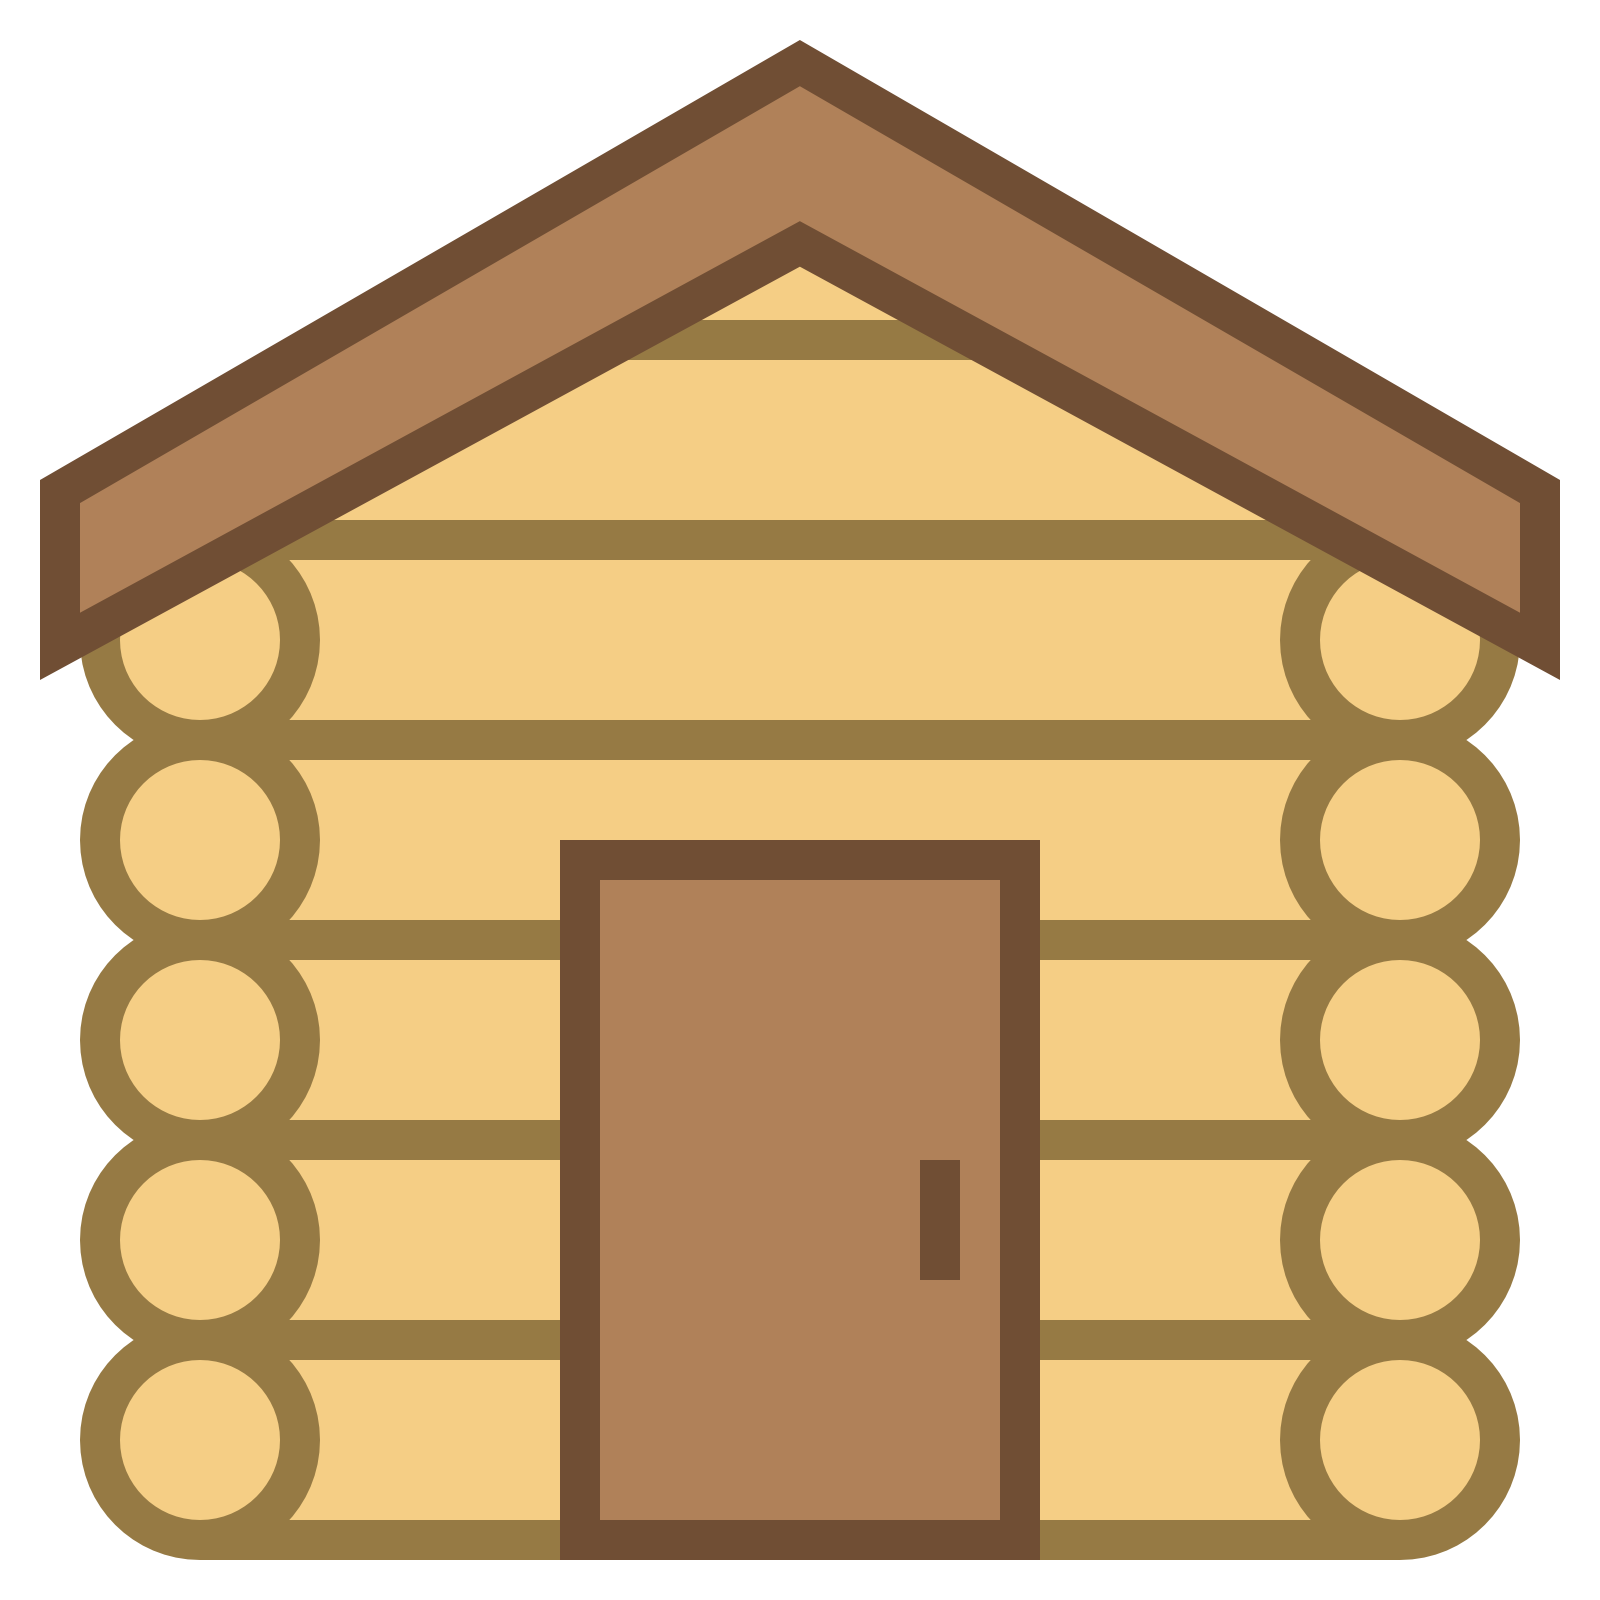 Winter clipart log cabin. Free png woods transparent